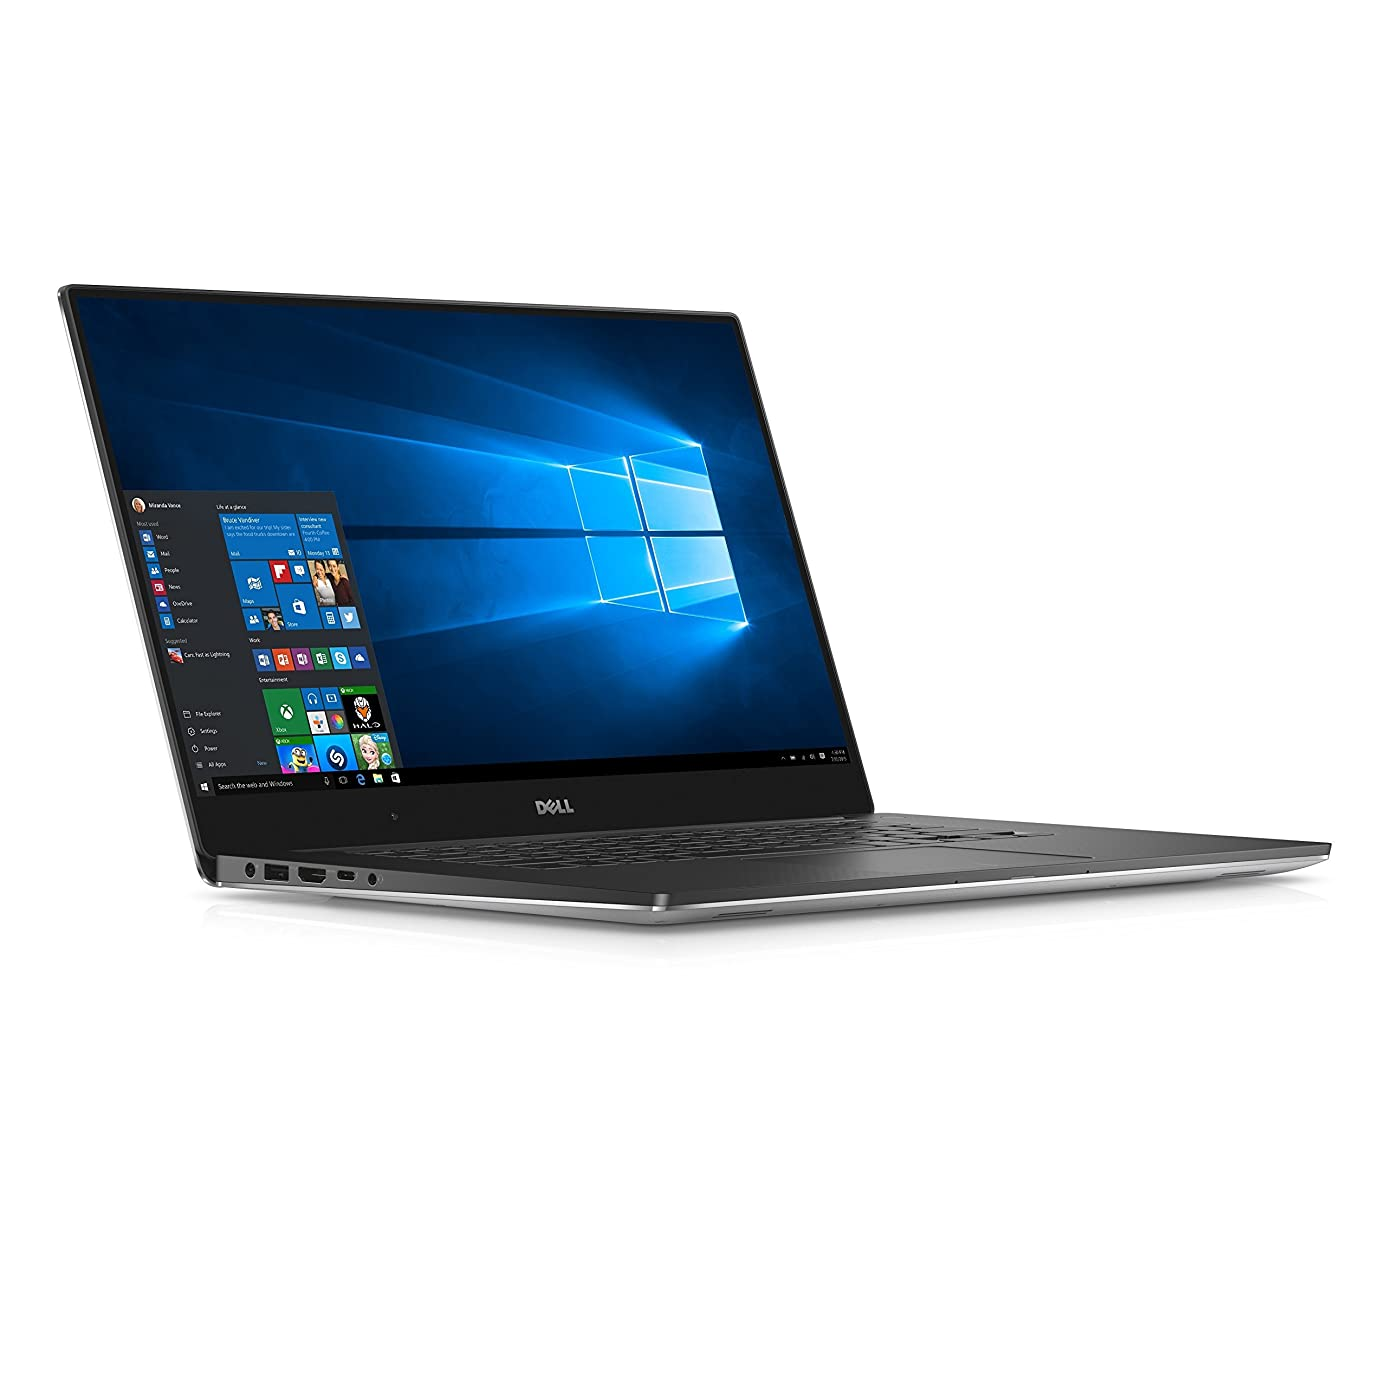 Dell XPS 15-9550 15.6-Inch Laptop (Intel Core i5-6300HQ X4 2.3GHz 8GB 1TB Windows 10 Home)Black (Renewed)